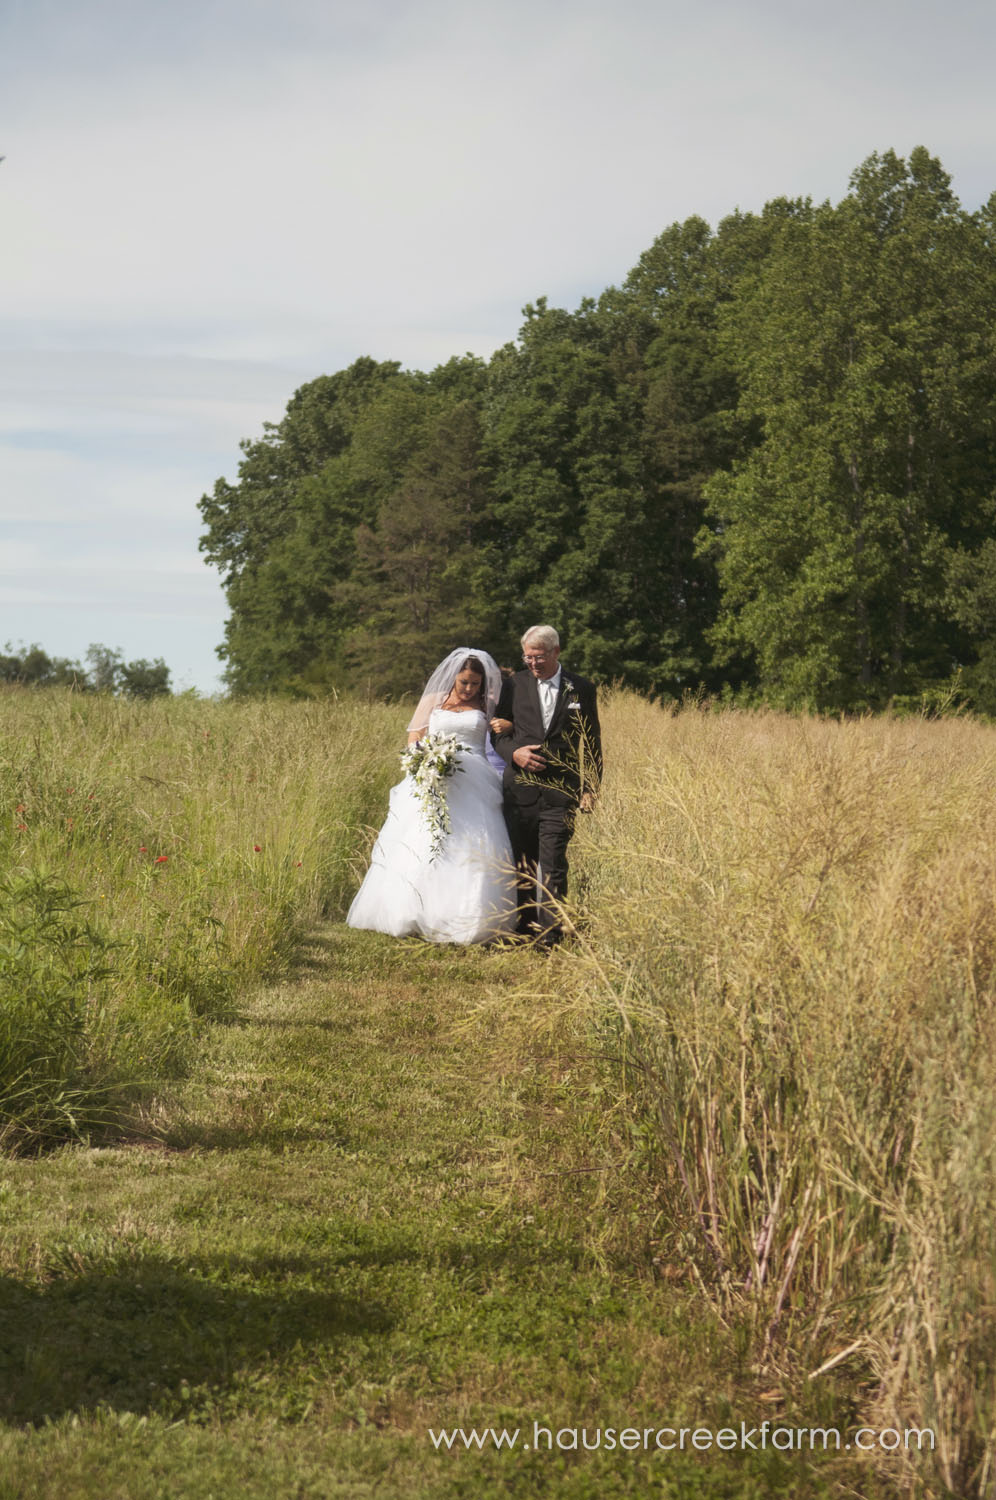 bride-with-father-wedding-at-hauser-creek-farm-a-photo-by-ashley-0496.jpg